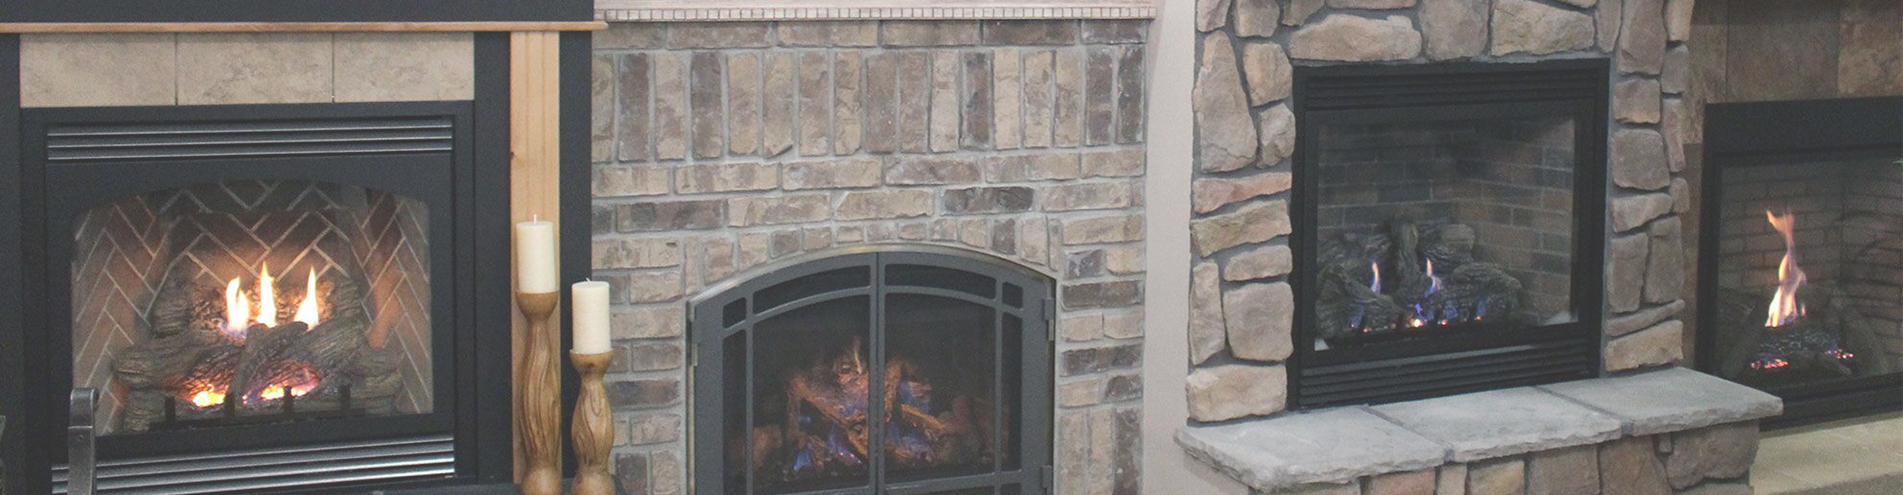 Nick's Fireplace Outfitters Services